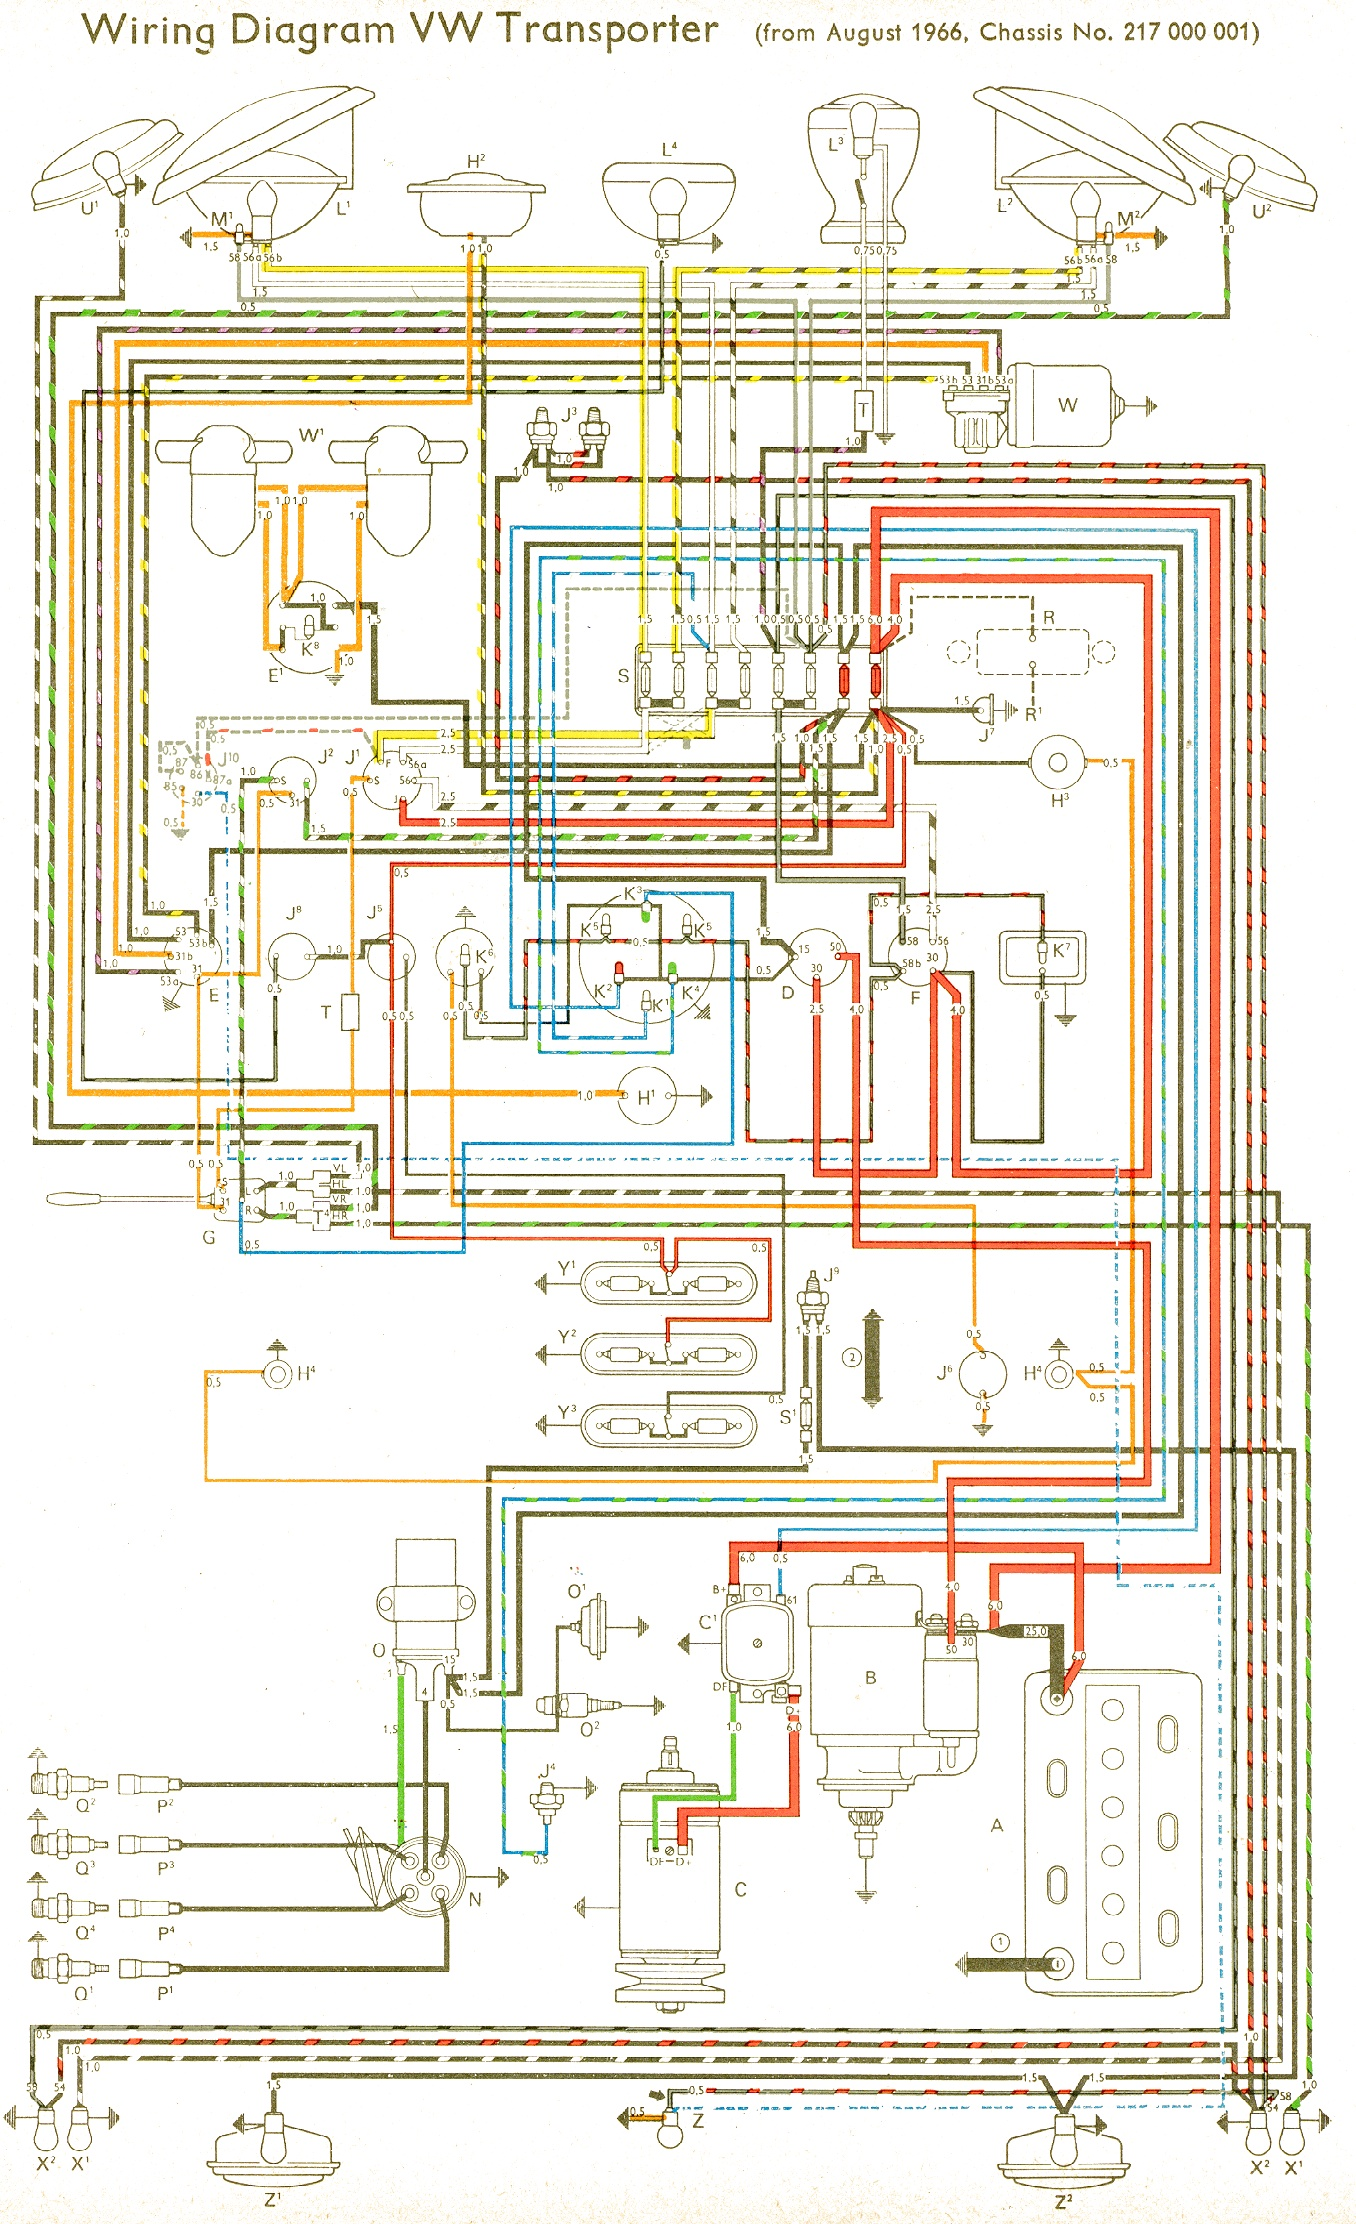 Bus Wiring Diagrams Starting Know About Wiring Diagram \u2022 Blue Bird Bus  Wiring Cab 2009 Bluebird Bus Wiring